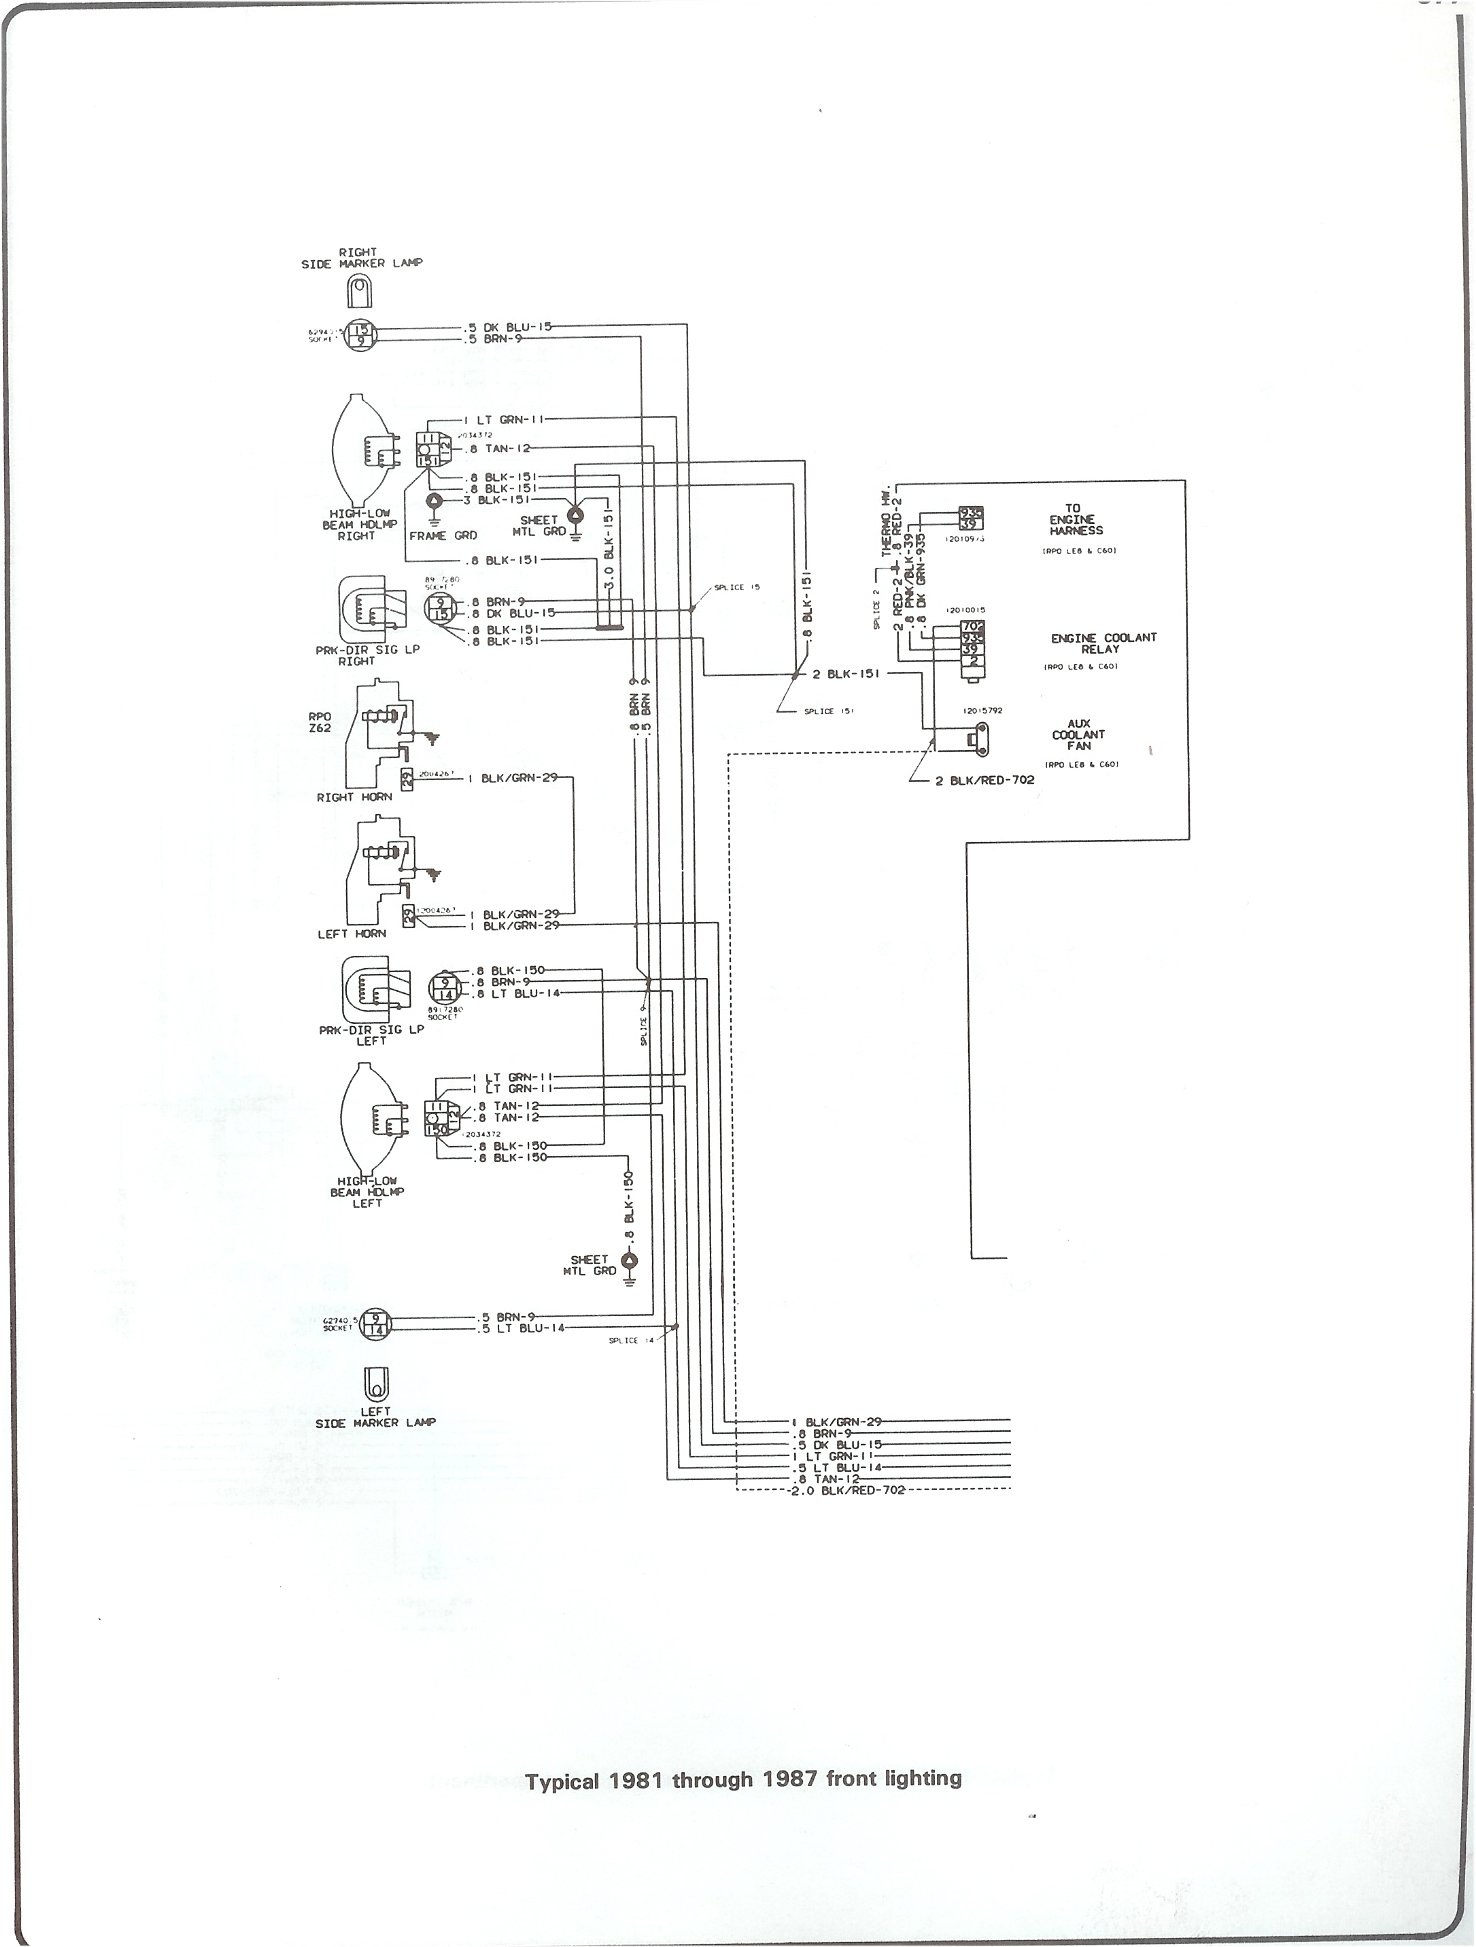 1984 Gmc Jimmy Wiring Diagram Schematics 1995 Sonoma Complete 73 87 Diagrams Ignition Wire Harness 98 Pickup